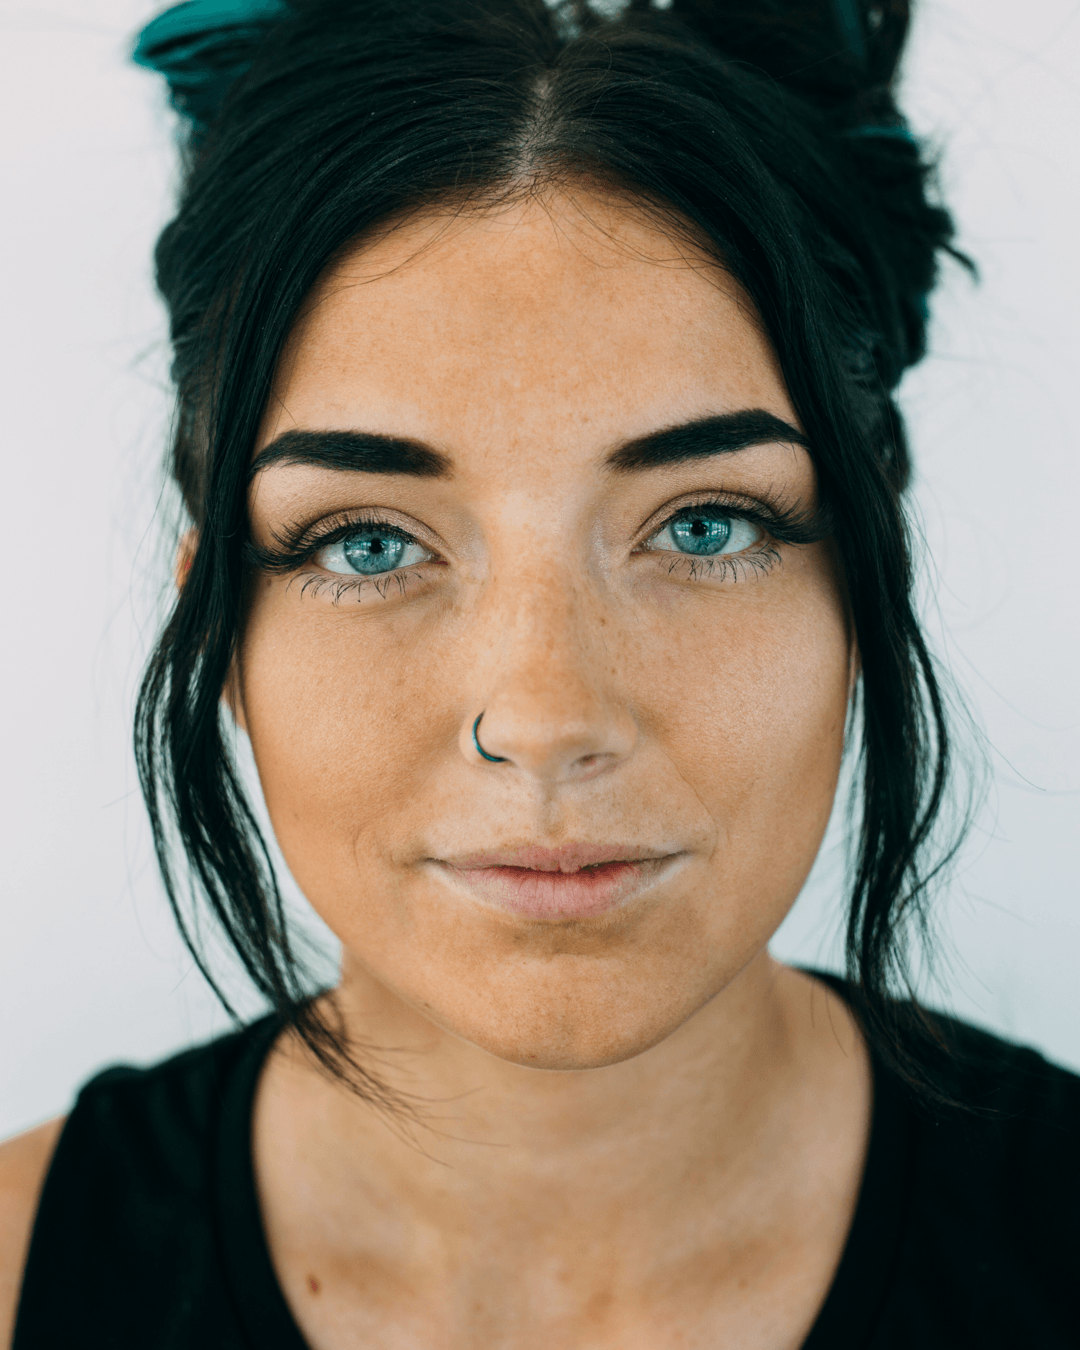 Travelling Internationally With Piercings